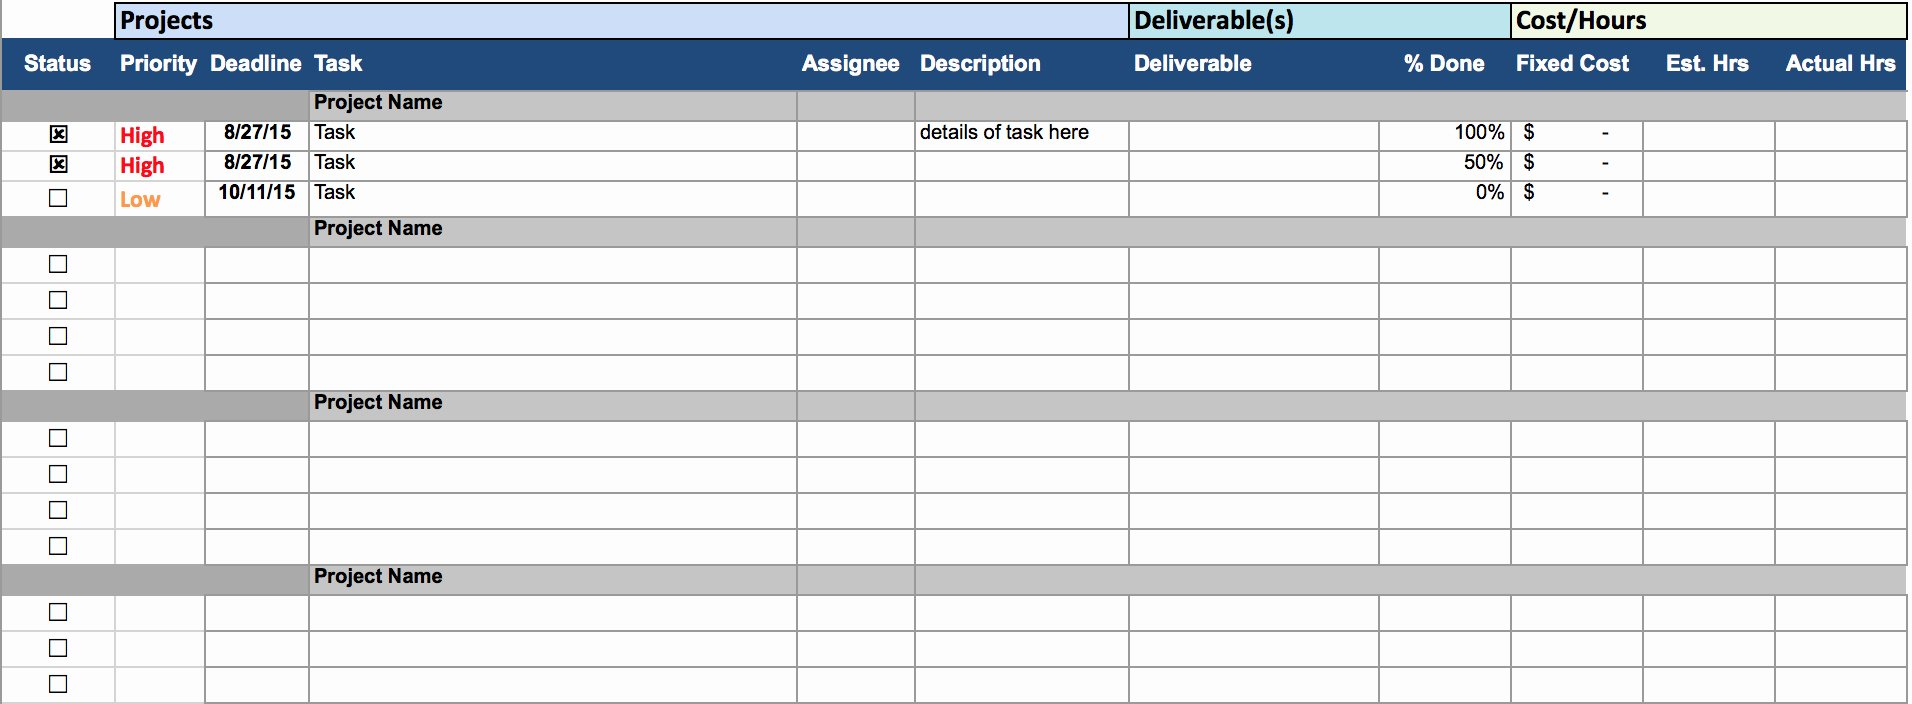 Applicant Tracking Spreadsheet Template Lovely Job Tracking Spreadsheet Template Payment Spreadshee Job